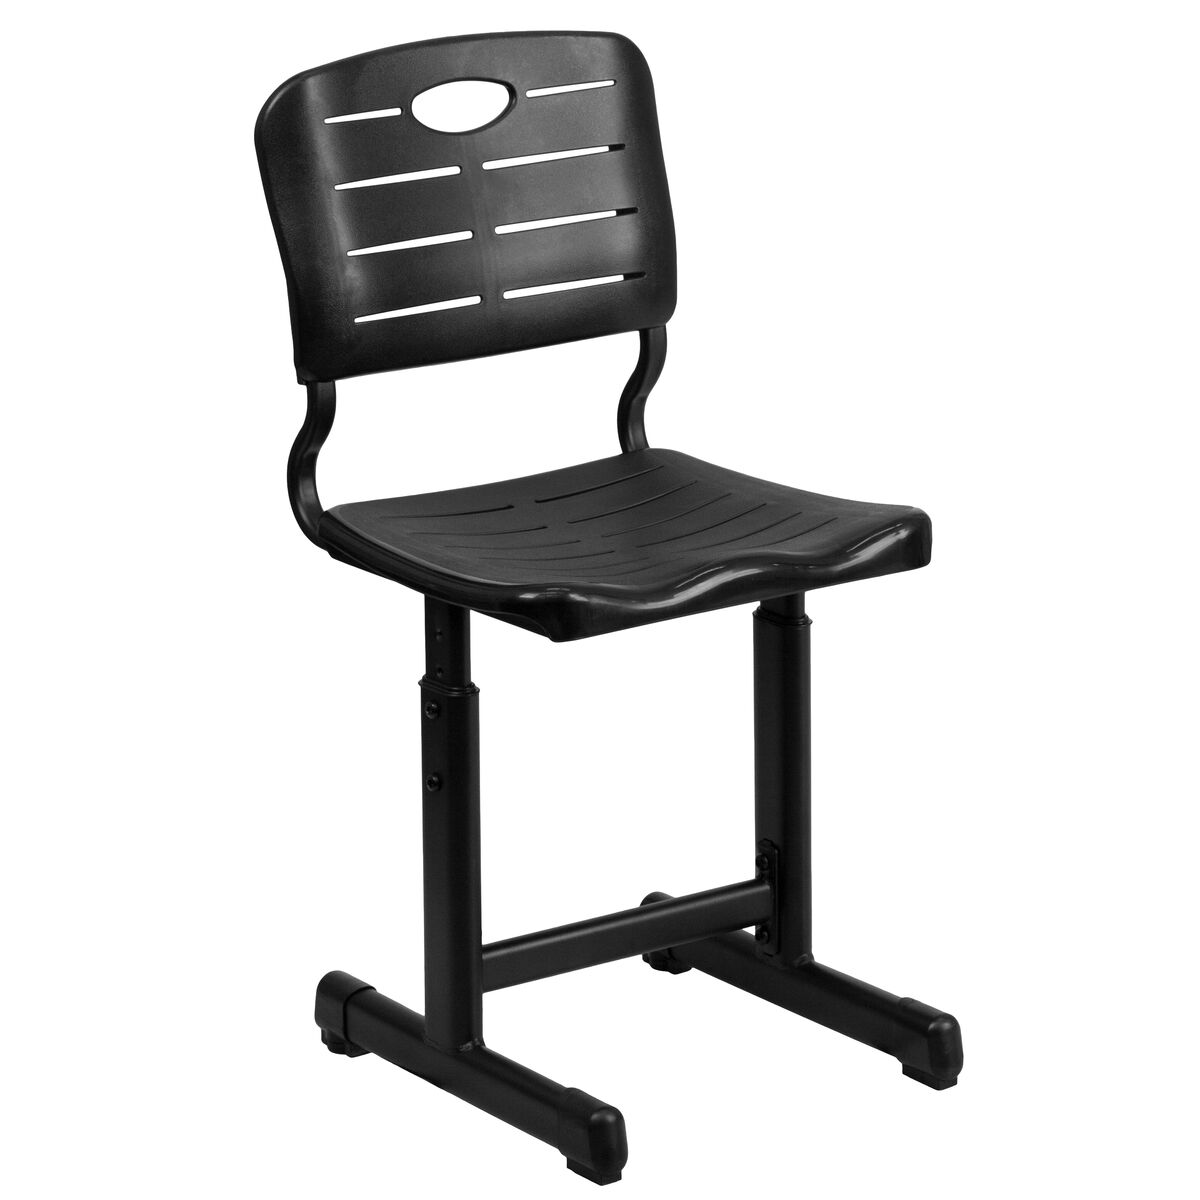 black plastic student chair yu ycx 09010 gg schoolfurniture4less com